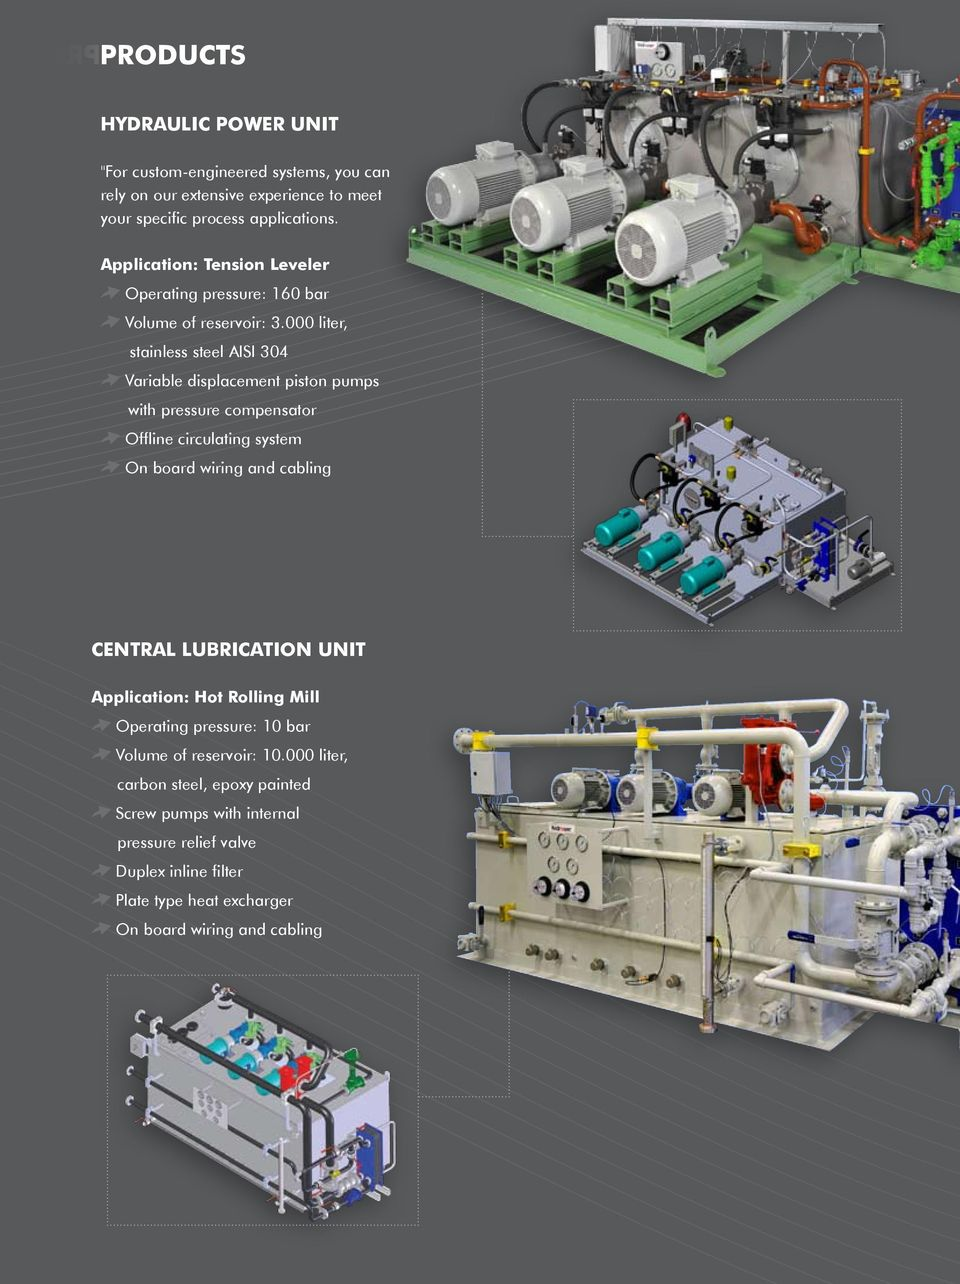 000 liter, stainless steel AISI 304 Variable displacement piston pumps with pressure compensator Offline circulating system On board wiring and cabling CENTRAL